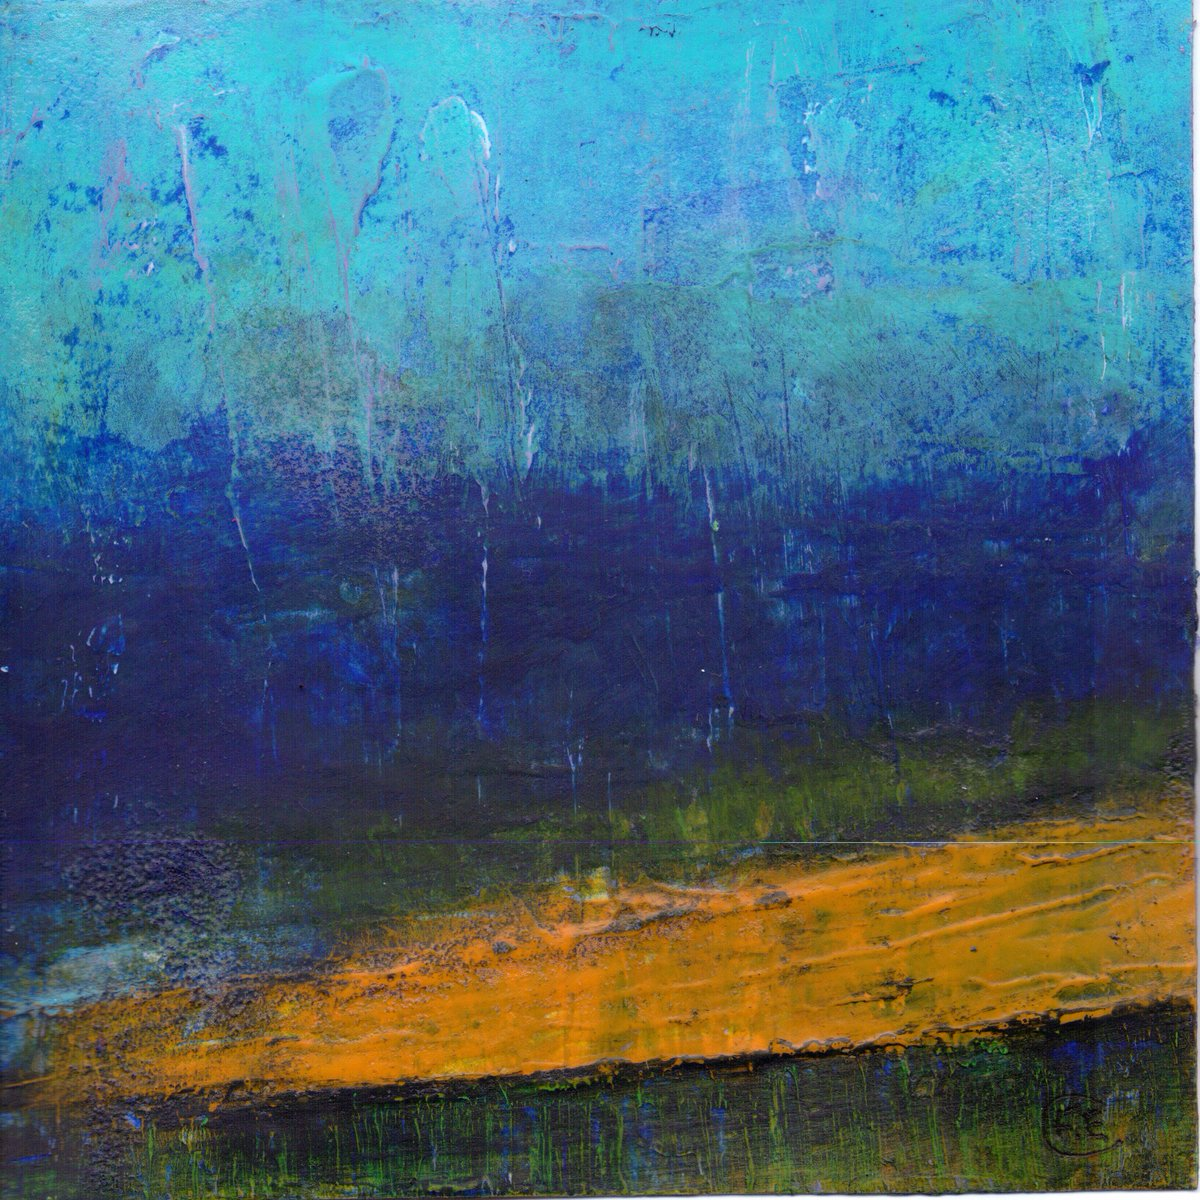 &#39;Whin Flooer Brae&#39; by @feclarkart 2014, Acrylic on paper, 5&quot; x 5&quot;, available:  https://www. etsy.com/uk/listing/216 527805/whin-flooer-brae-daily-painting-28th?ref=shop_home_active_33 &nbsp; …  #painting #Scottishartists #whins<br>http://pic.twitter.com/xc4bR4FTCm